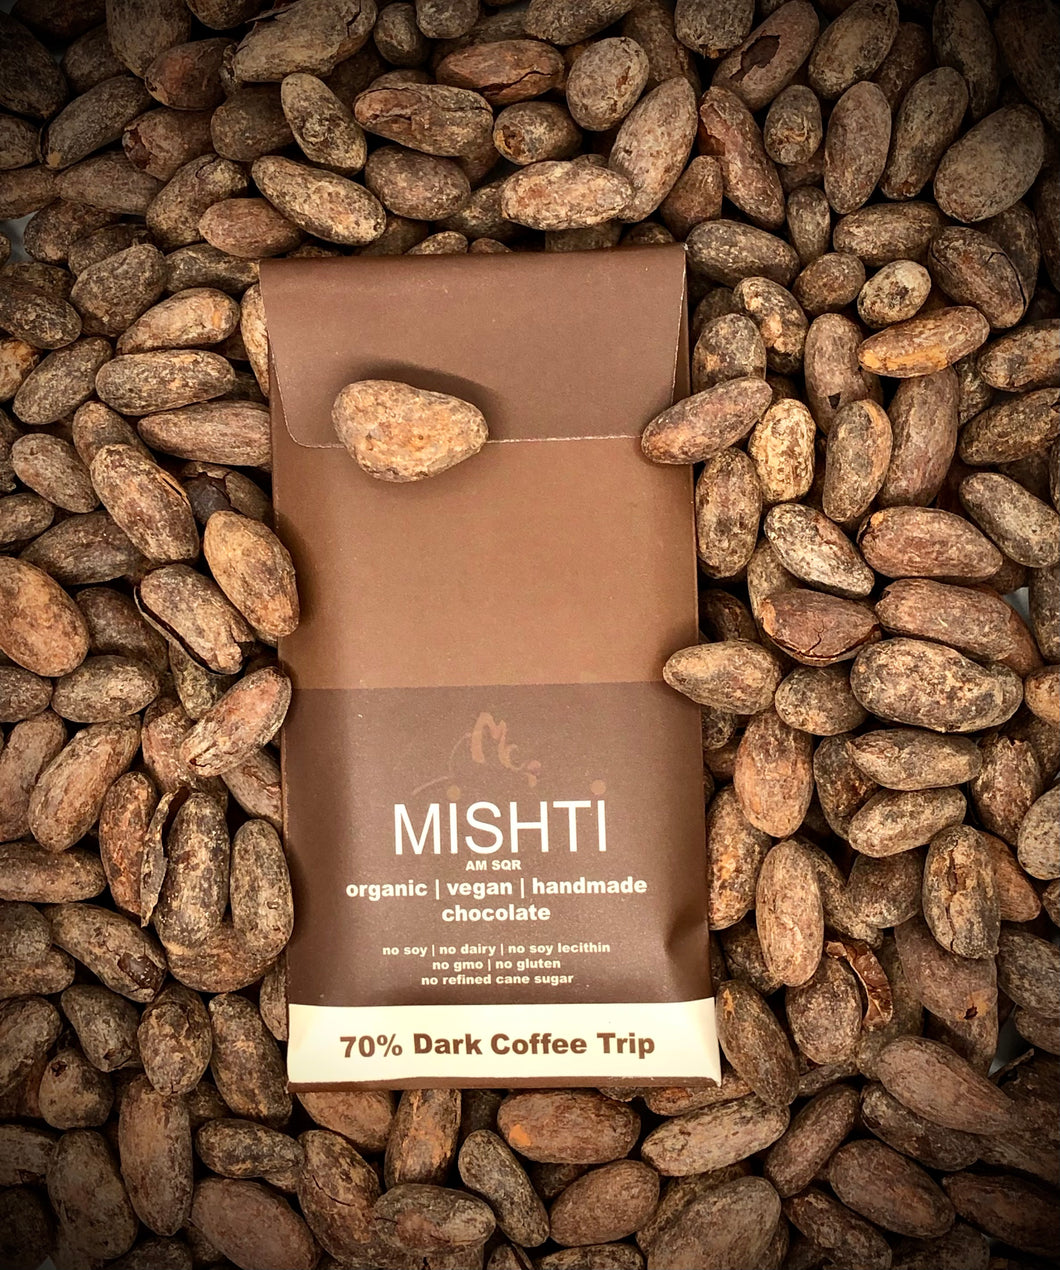 Coffee trip - 70% dark chocolate with coffee